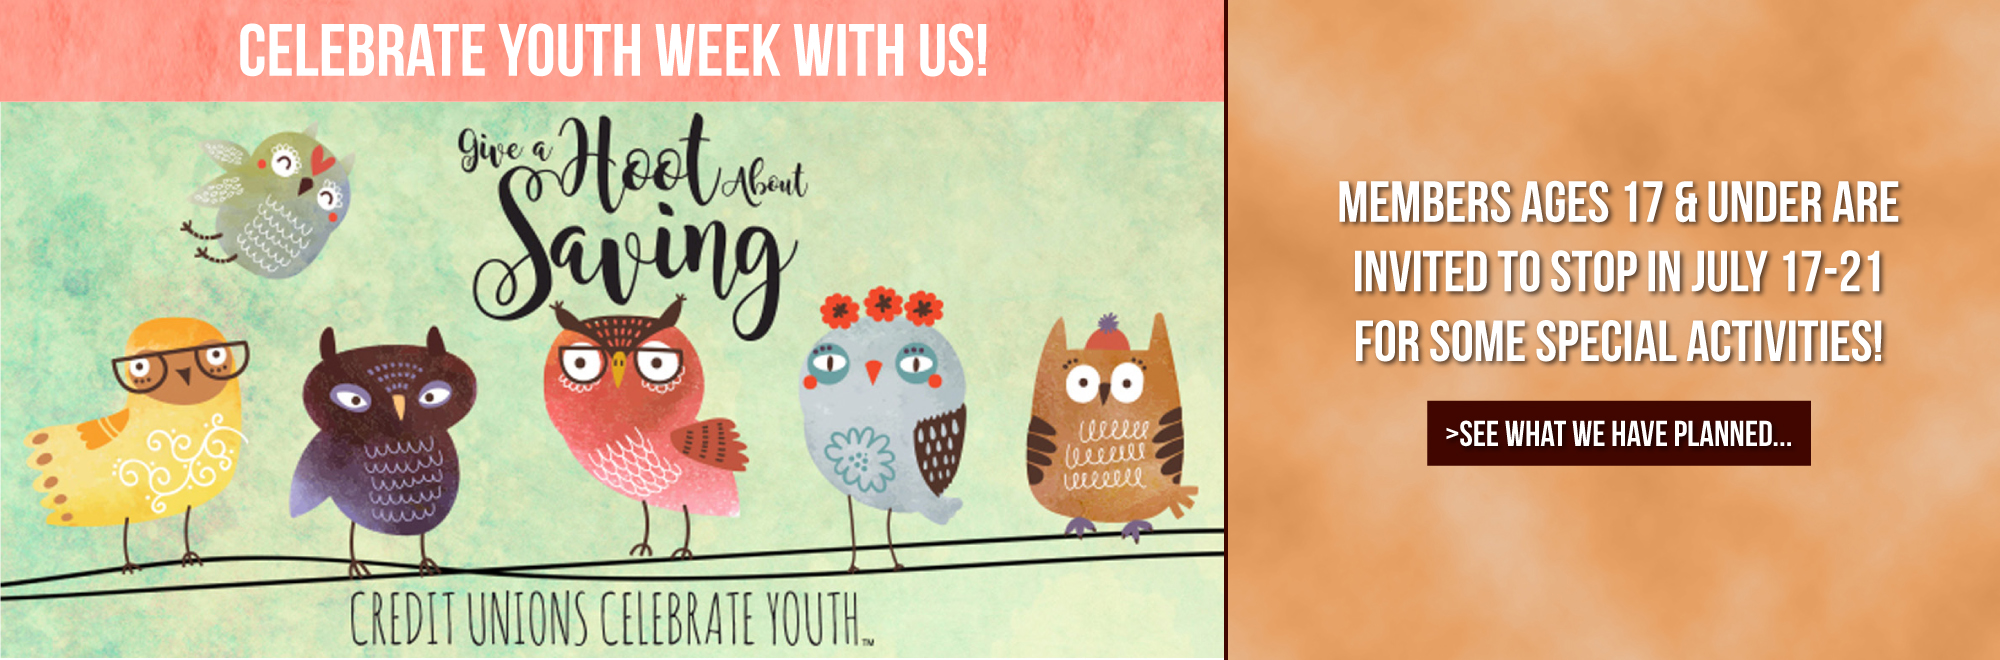 Join us for youth week, July 17-21!